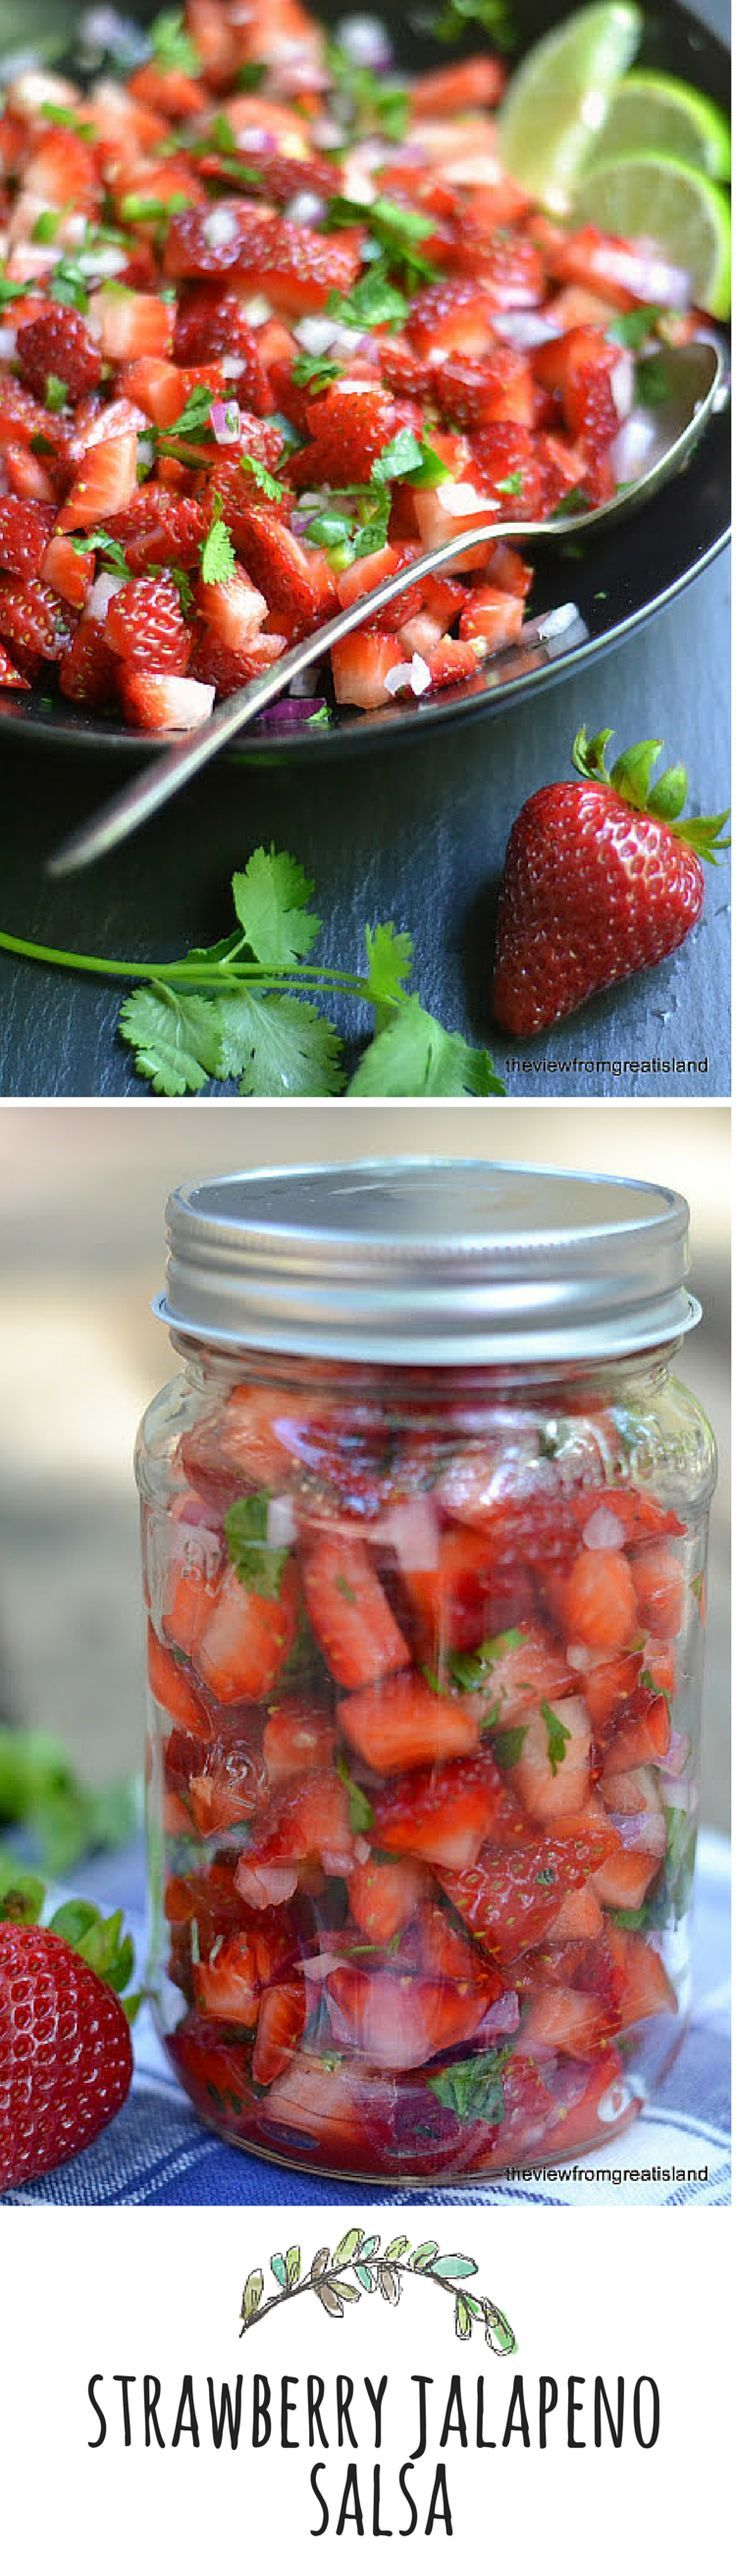 A strawberry jalapeno salsa! Definitely a different type of salsa worth trying out this summer.